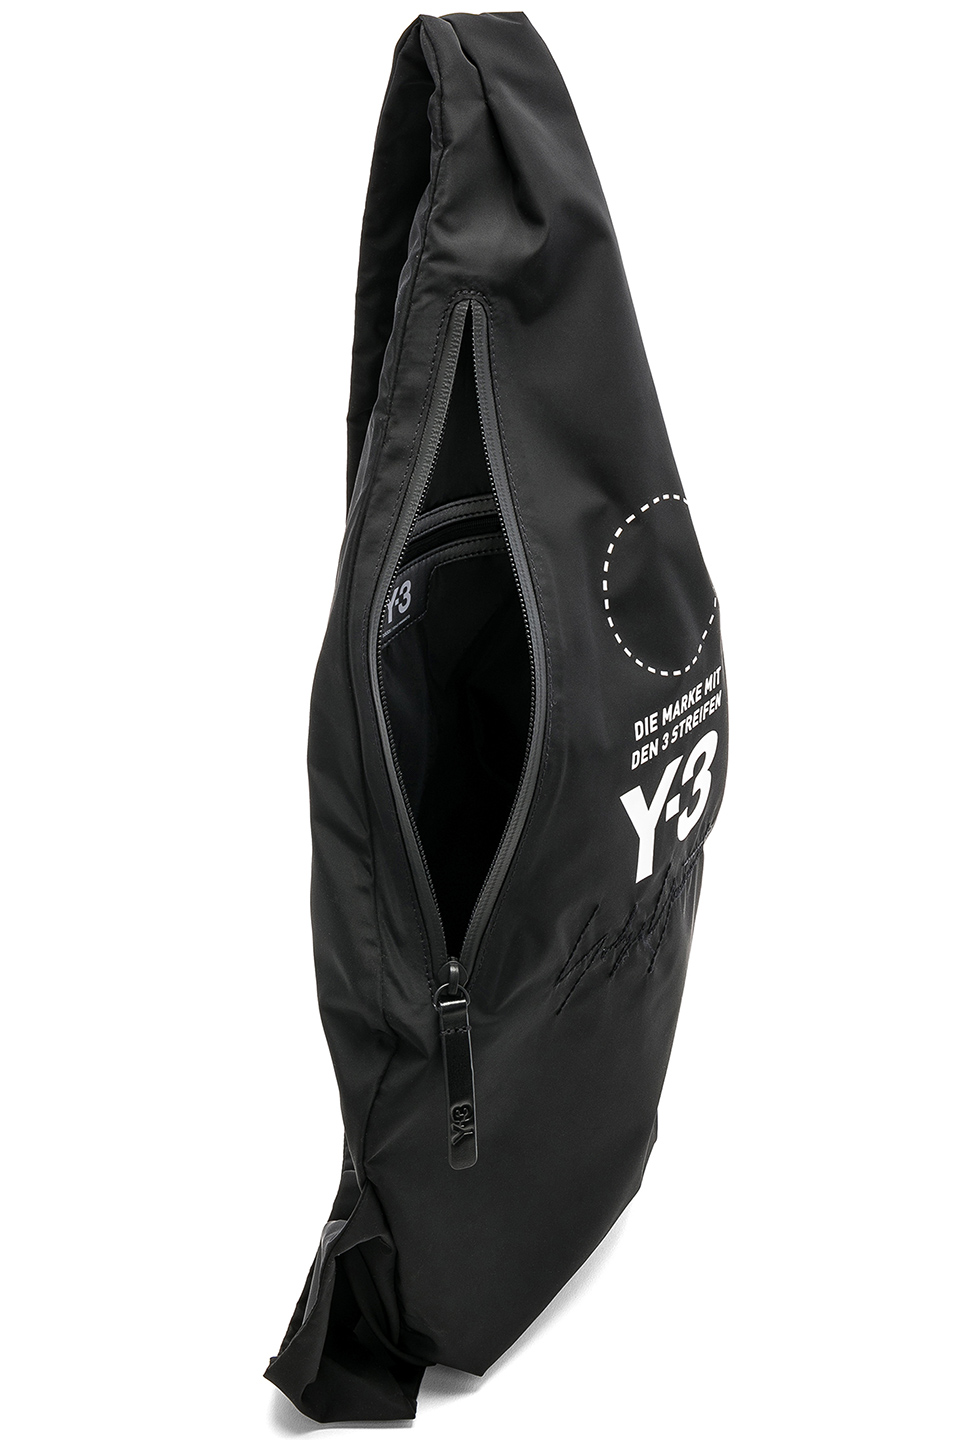 Buy Original Y-3 Yohji Yamamoto Messenger Bag at Indonesia  a2bbc72d6a8d9